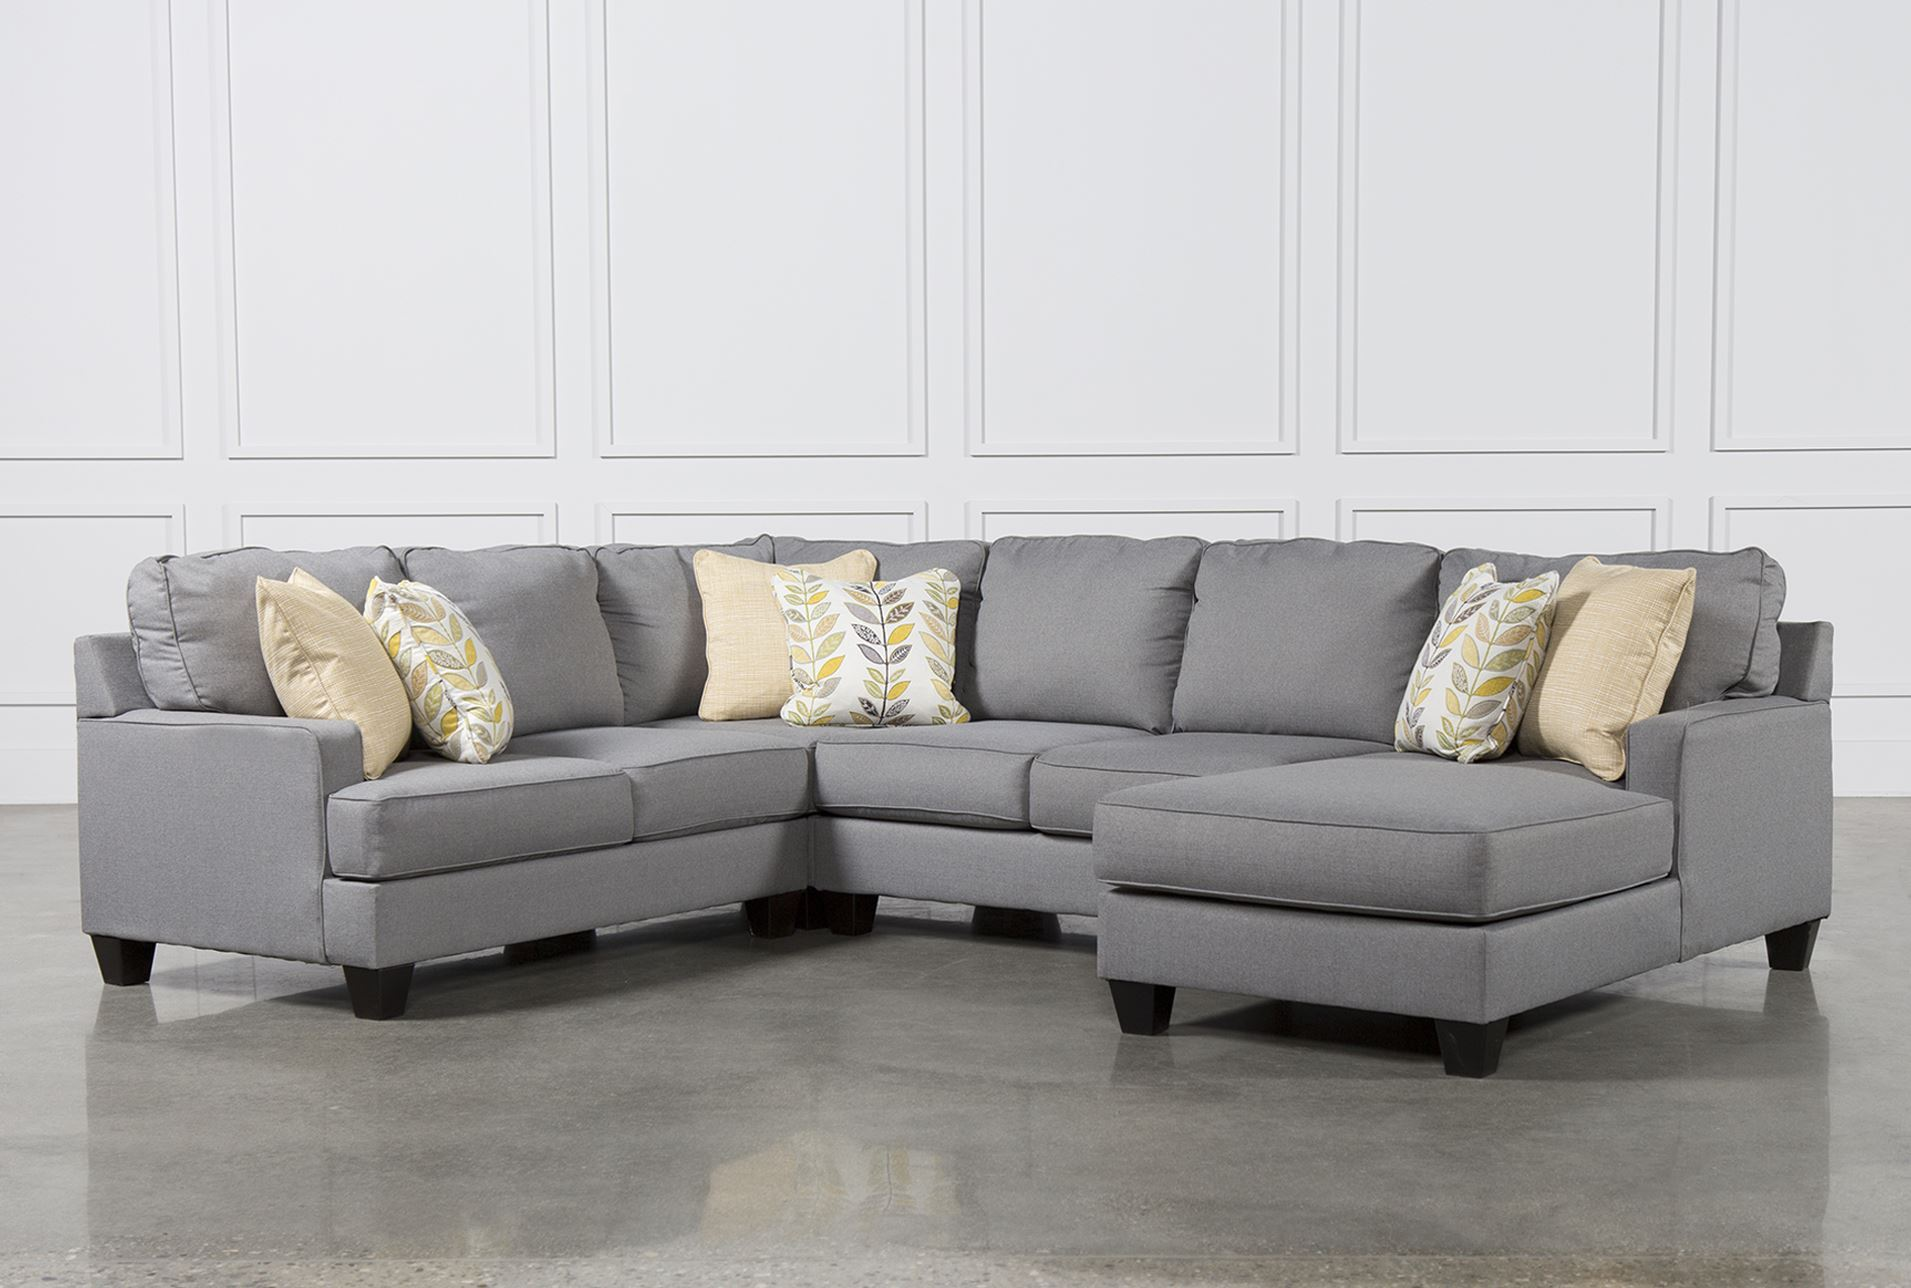 Chamberly 4 piece sectional w raf chaise living spaces for 4 piece sectional sofa with chaise